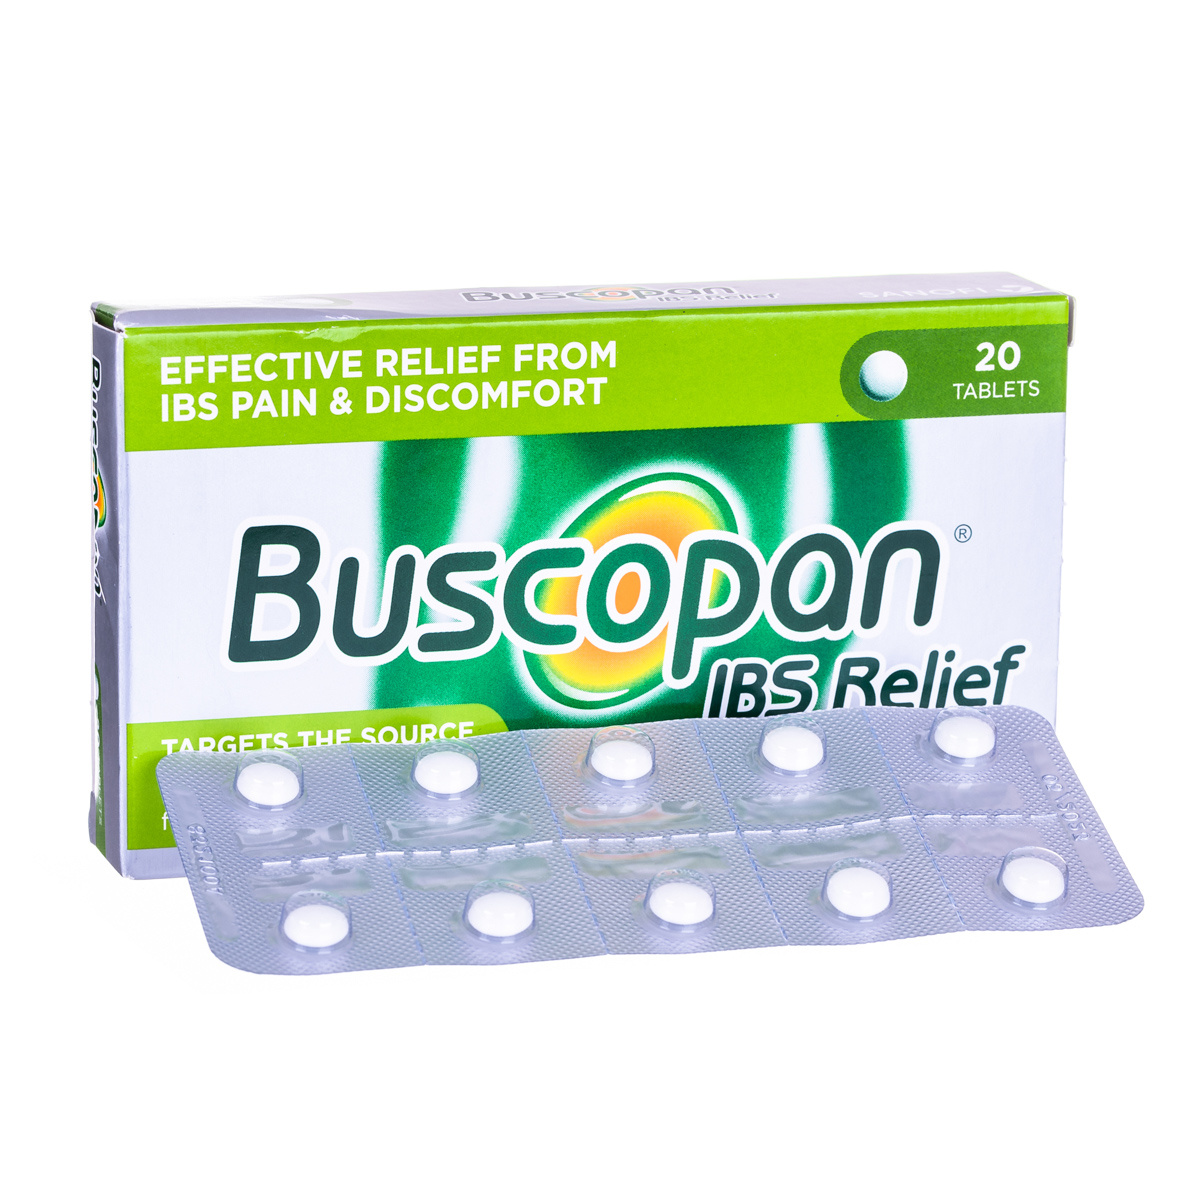 buscopan ibs relief side effects